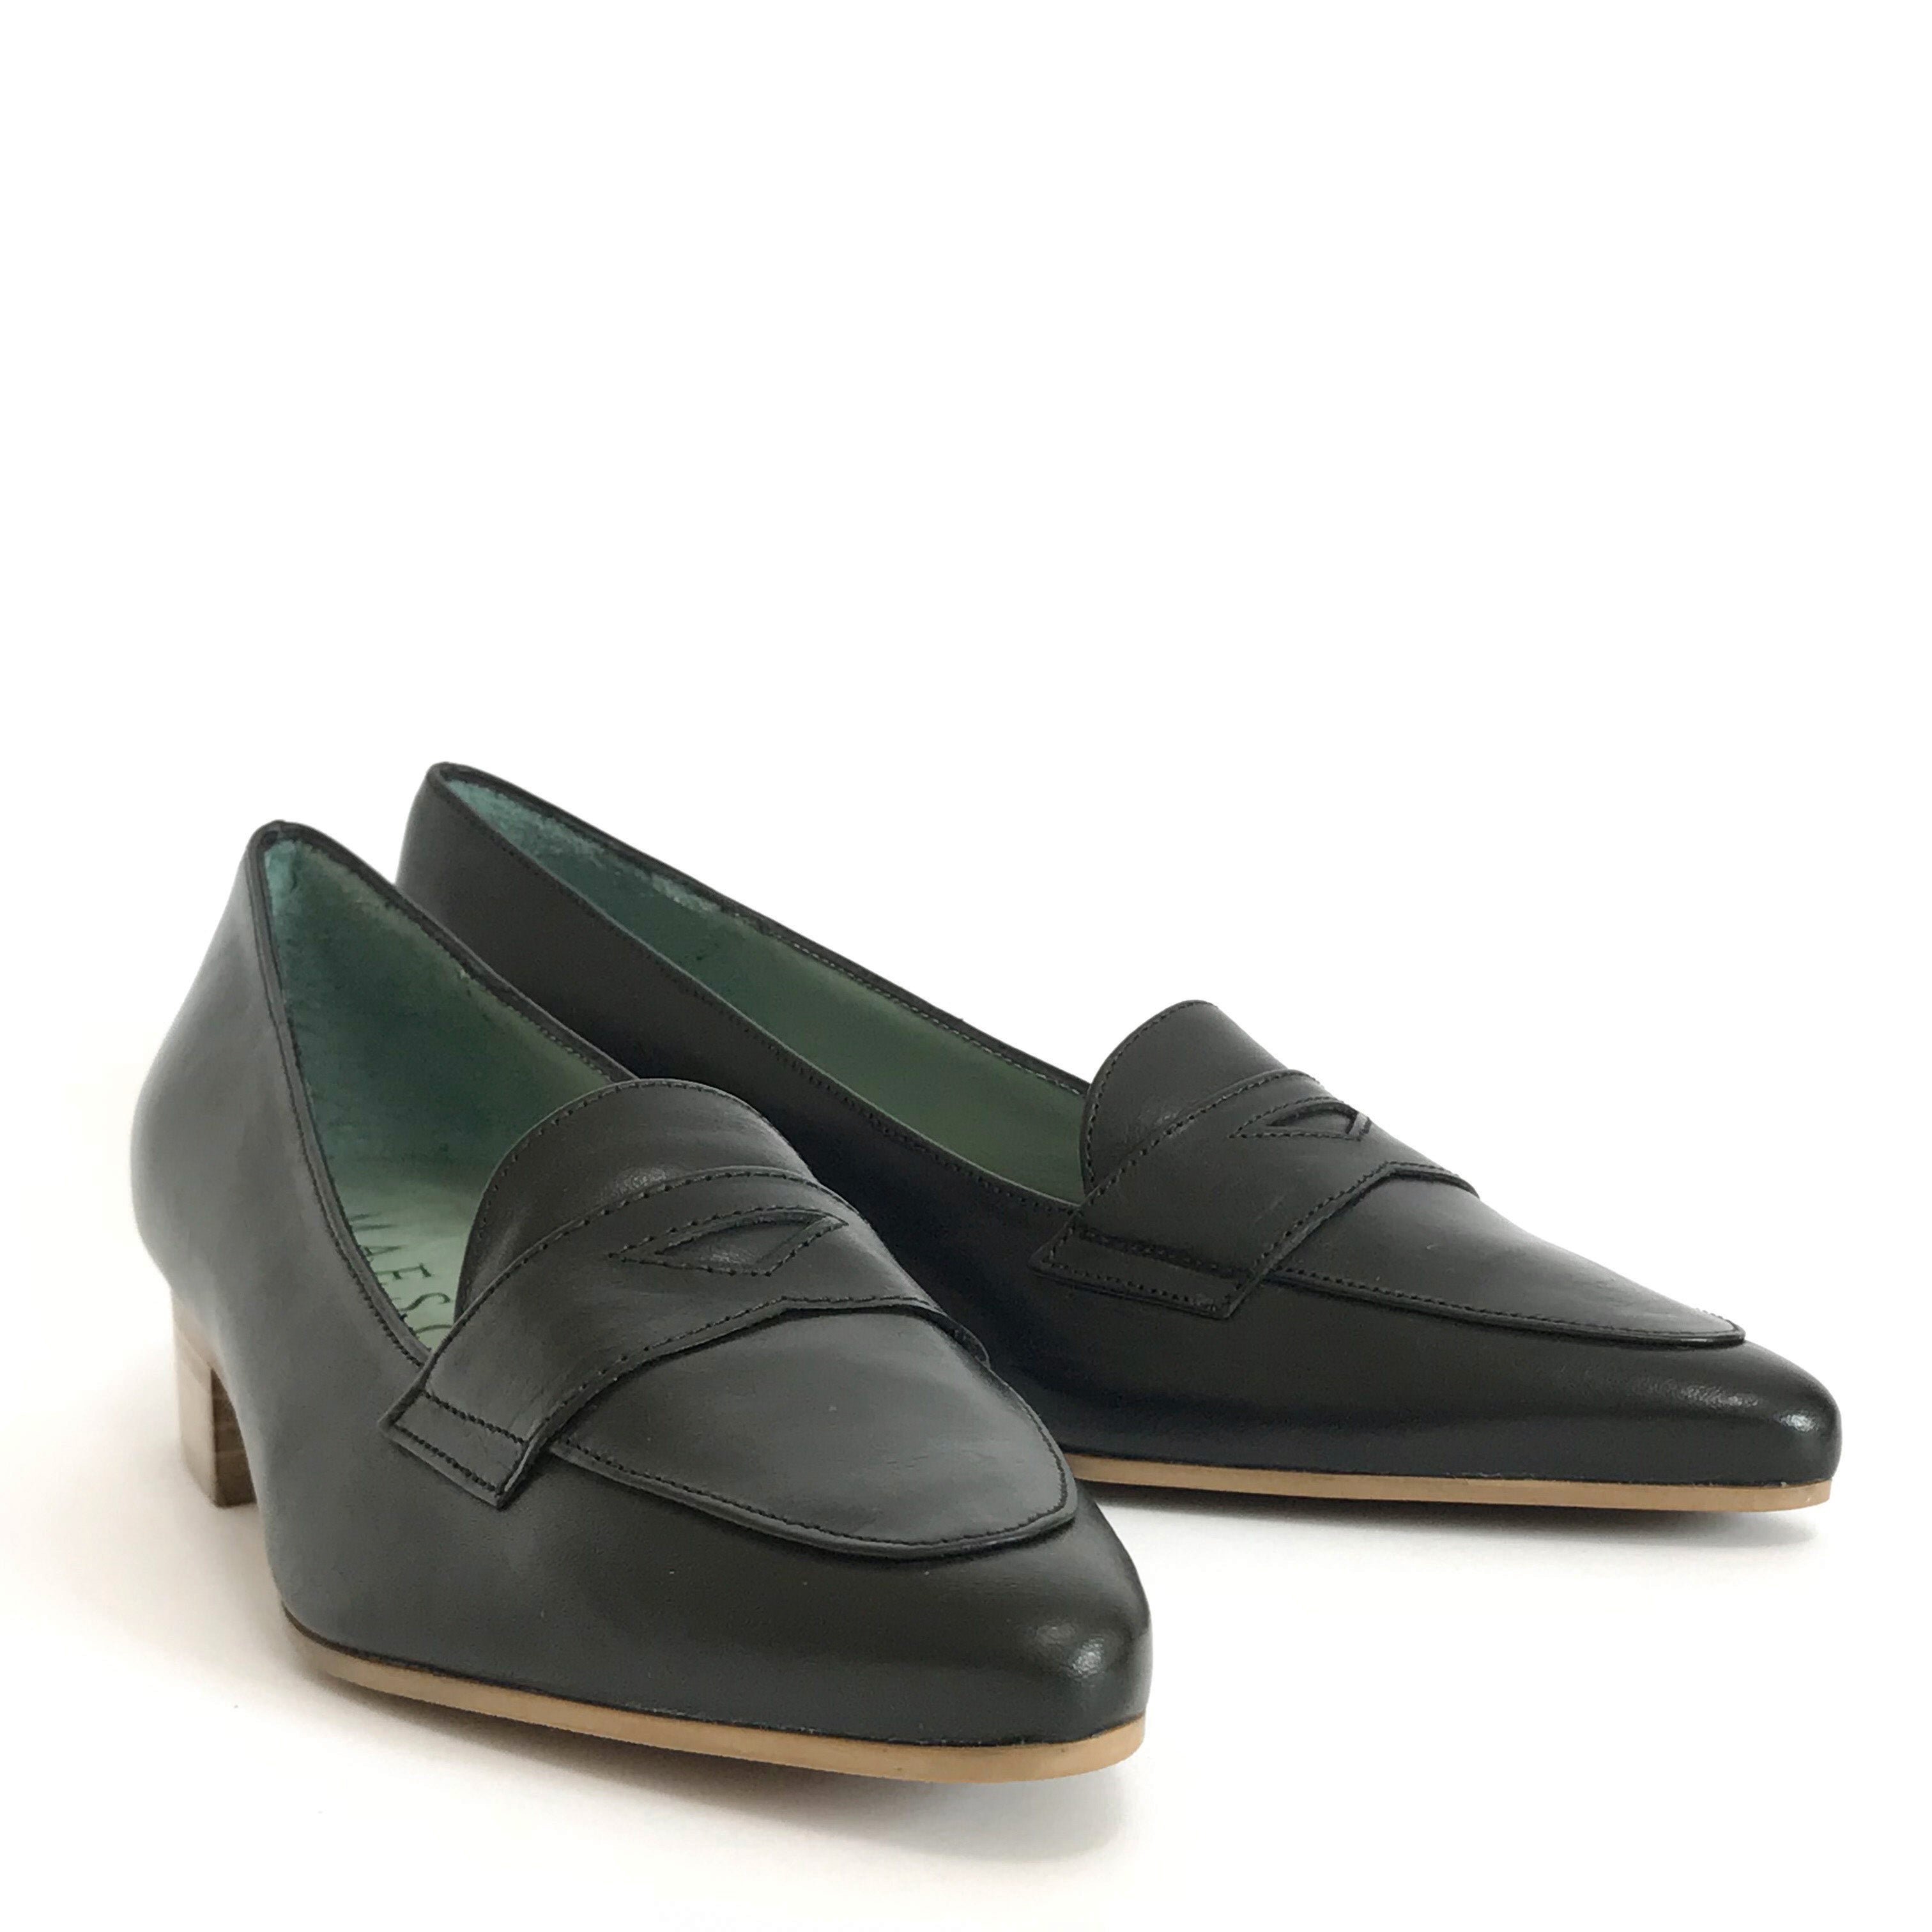 Black Women Ladies Italian Vegetable Tanned Leather Low Heel Dress Shoe Loafer